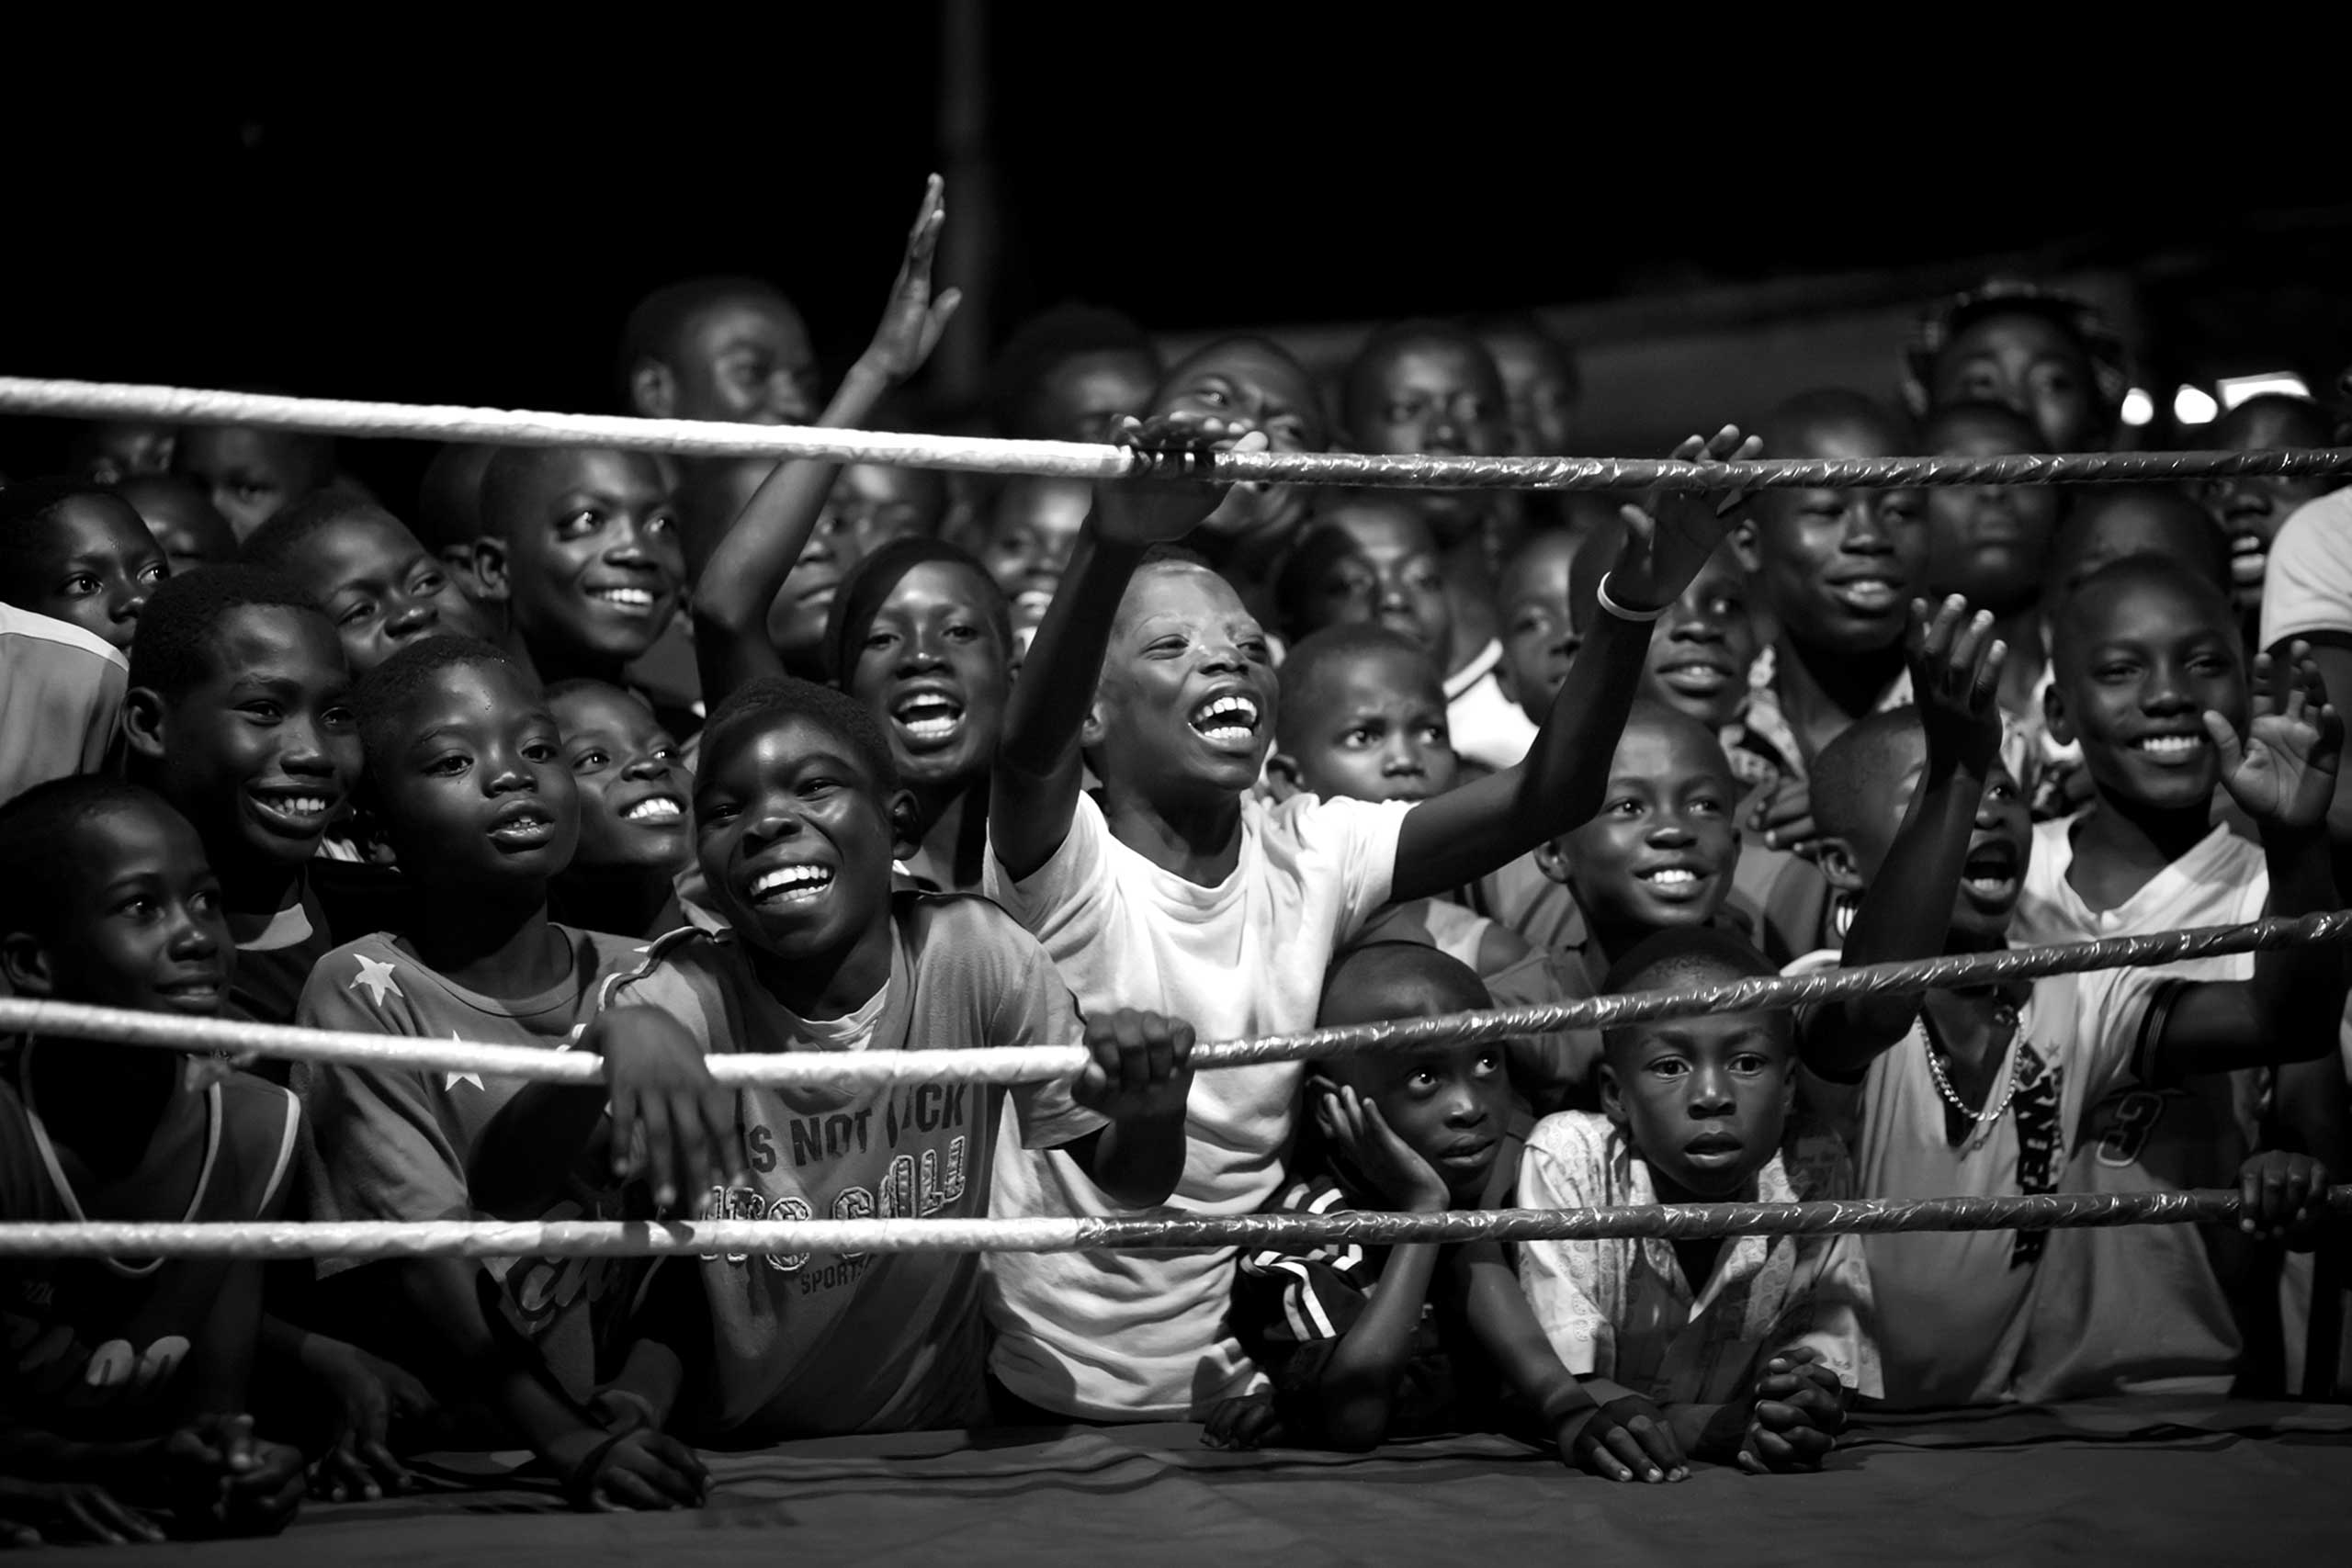 Young boys cheer at a boxing match in Bukom, a small neighborhood of Accra in Ghana, which has produced all of the country's world champions.